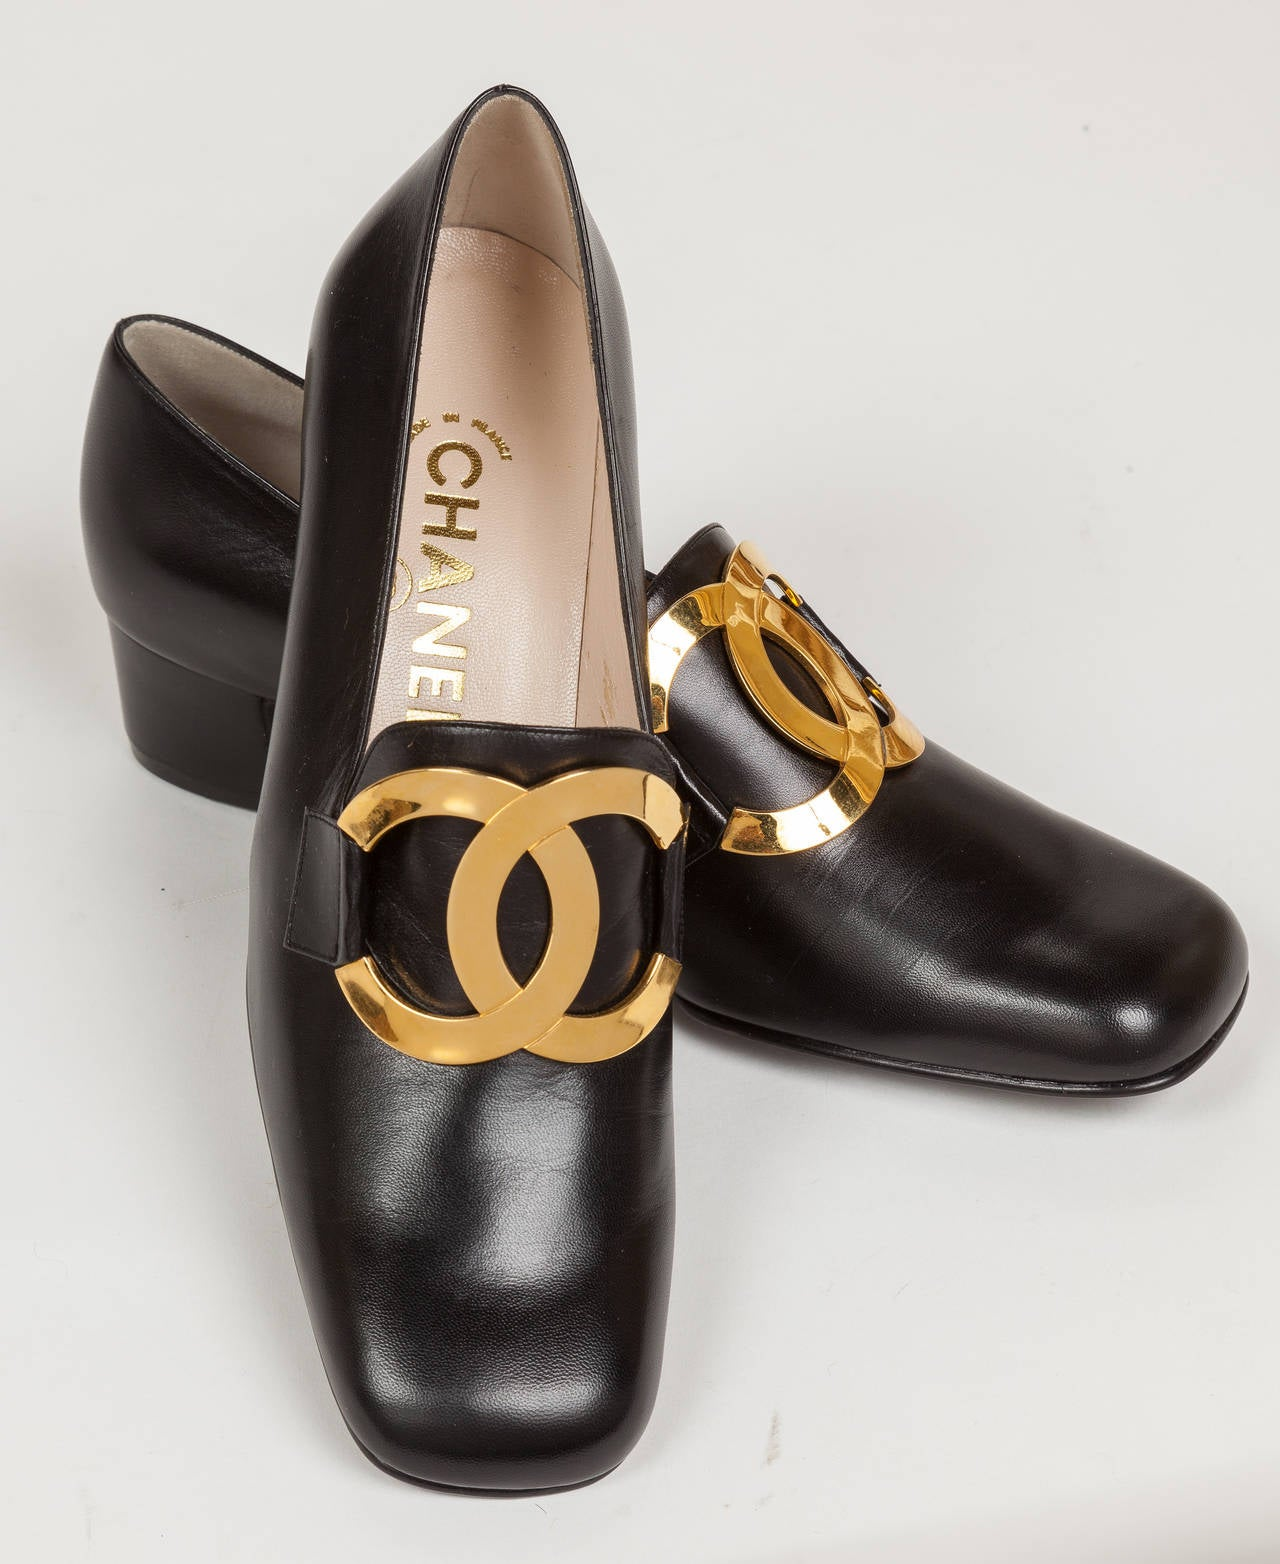 1996 NIB Chanel Black Leather Loafers Shoes W/Gold Metal CC Logo And Square Toe At 1stdibs